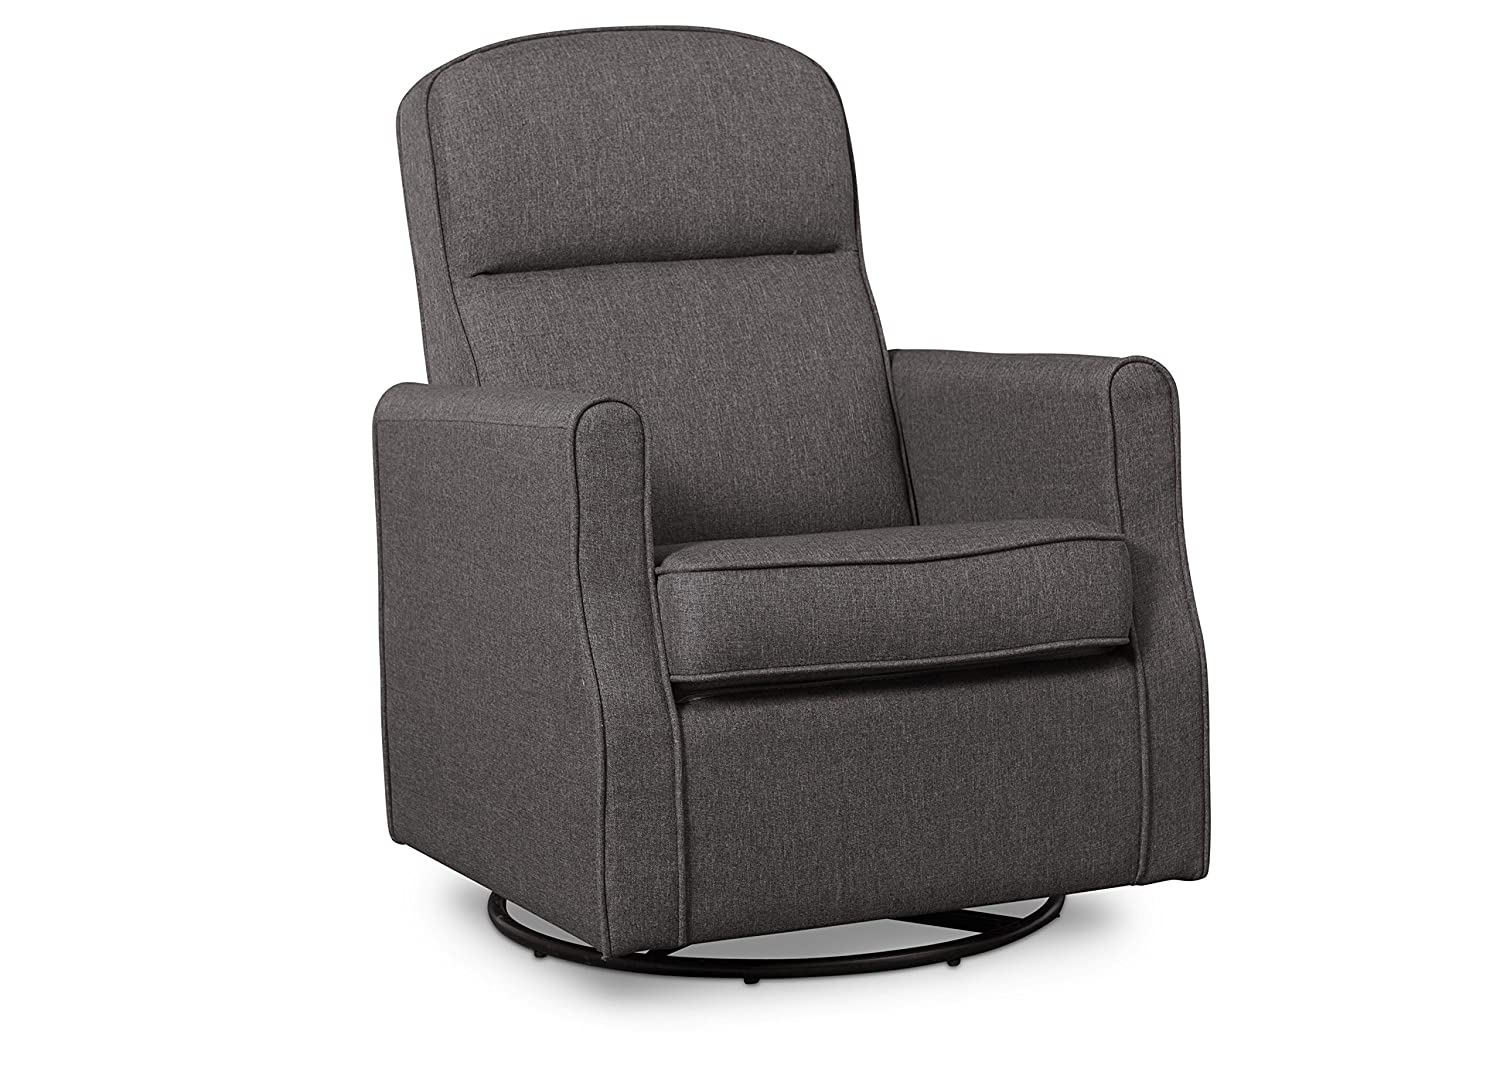 delta children blair slim nursery glider swivel rocker chair charcoal